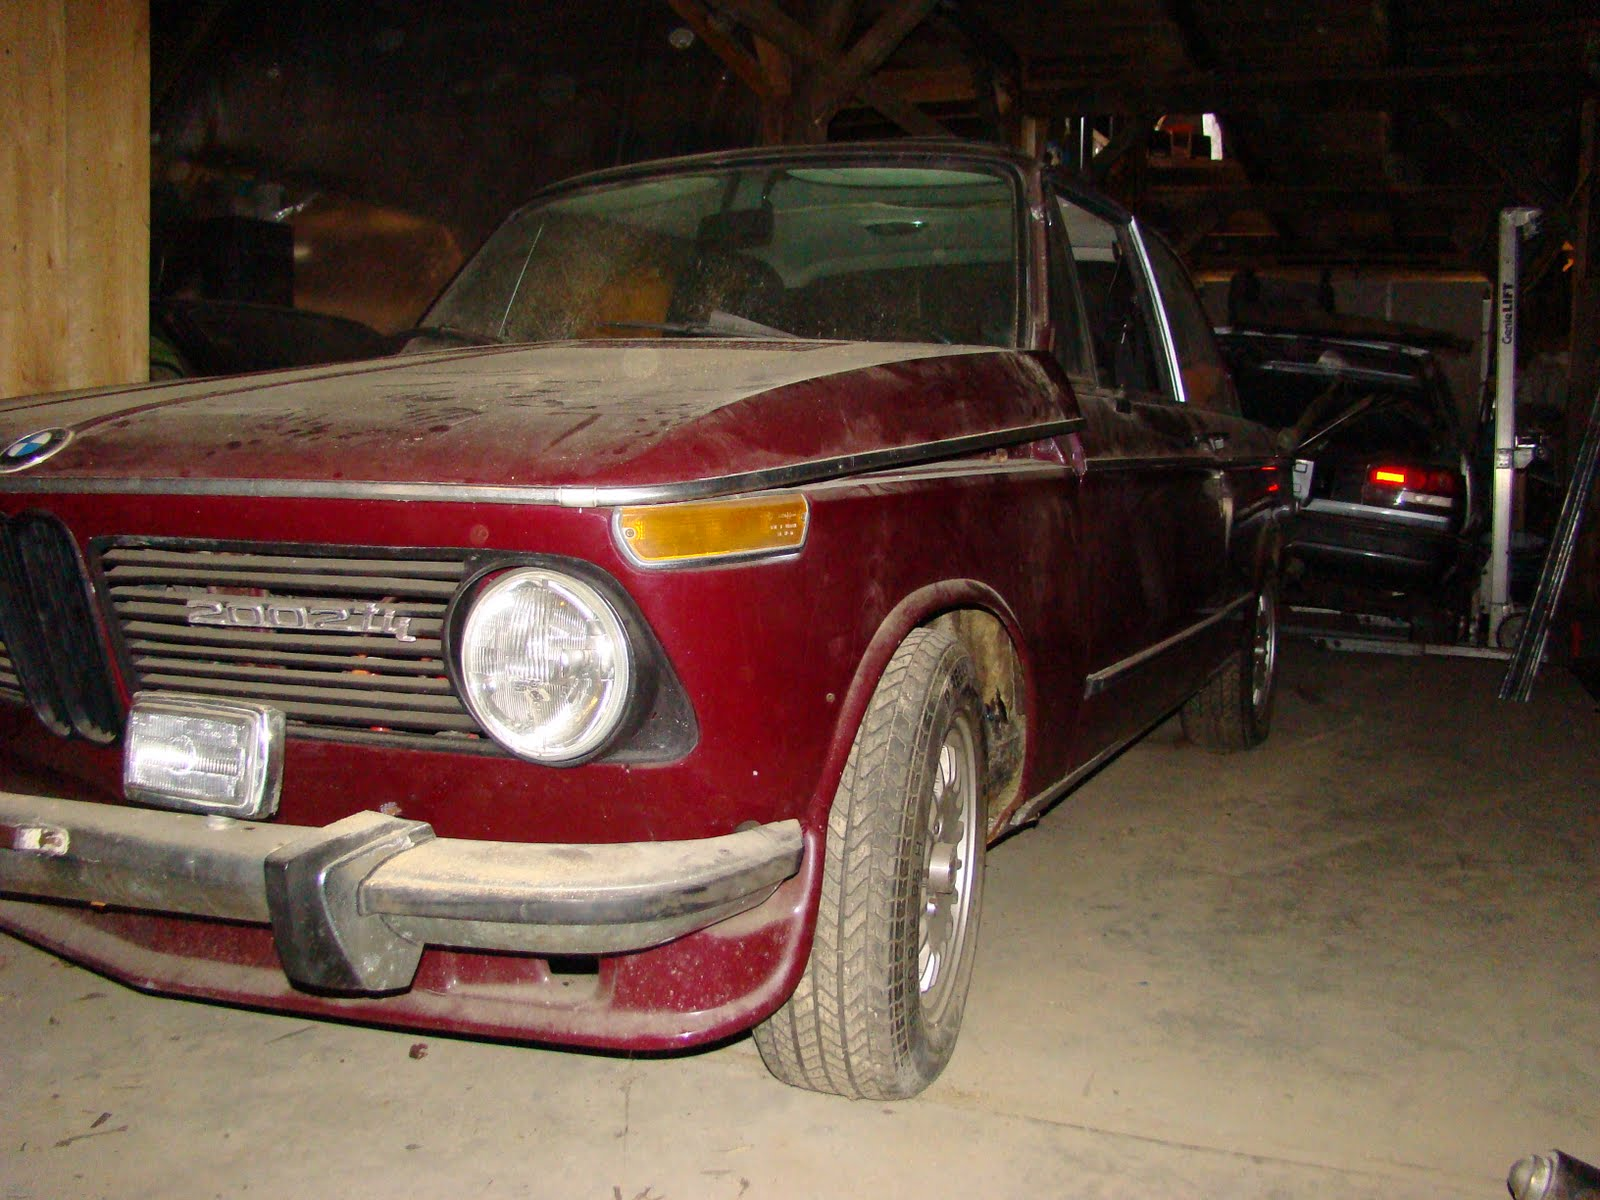 New england barn finds for sale 1973 2002 tii on ebay now for New england barns for sale